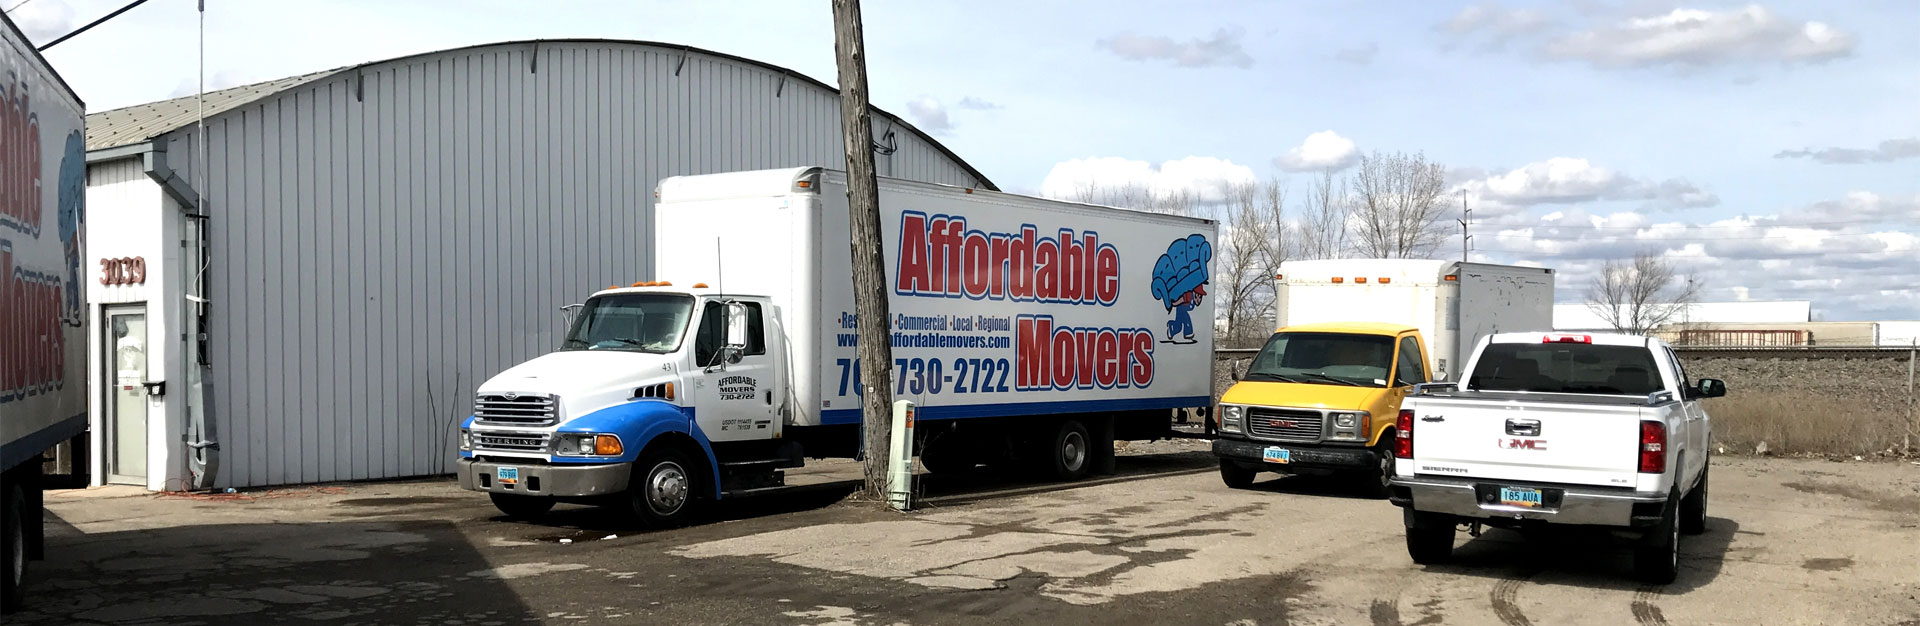 Affordable Movers - Gallery